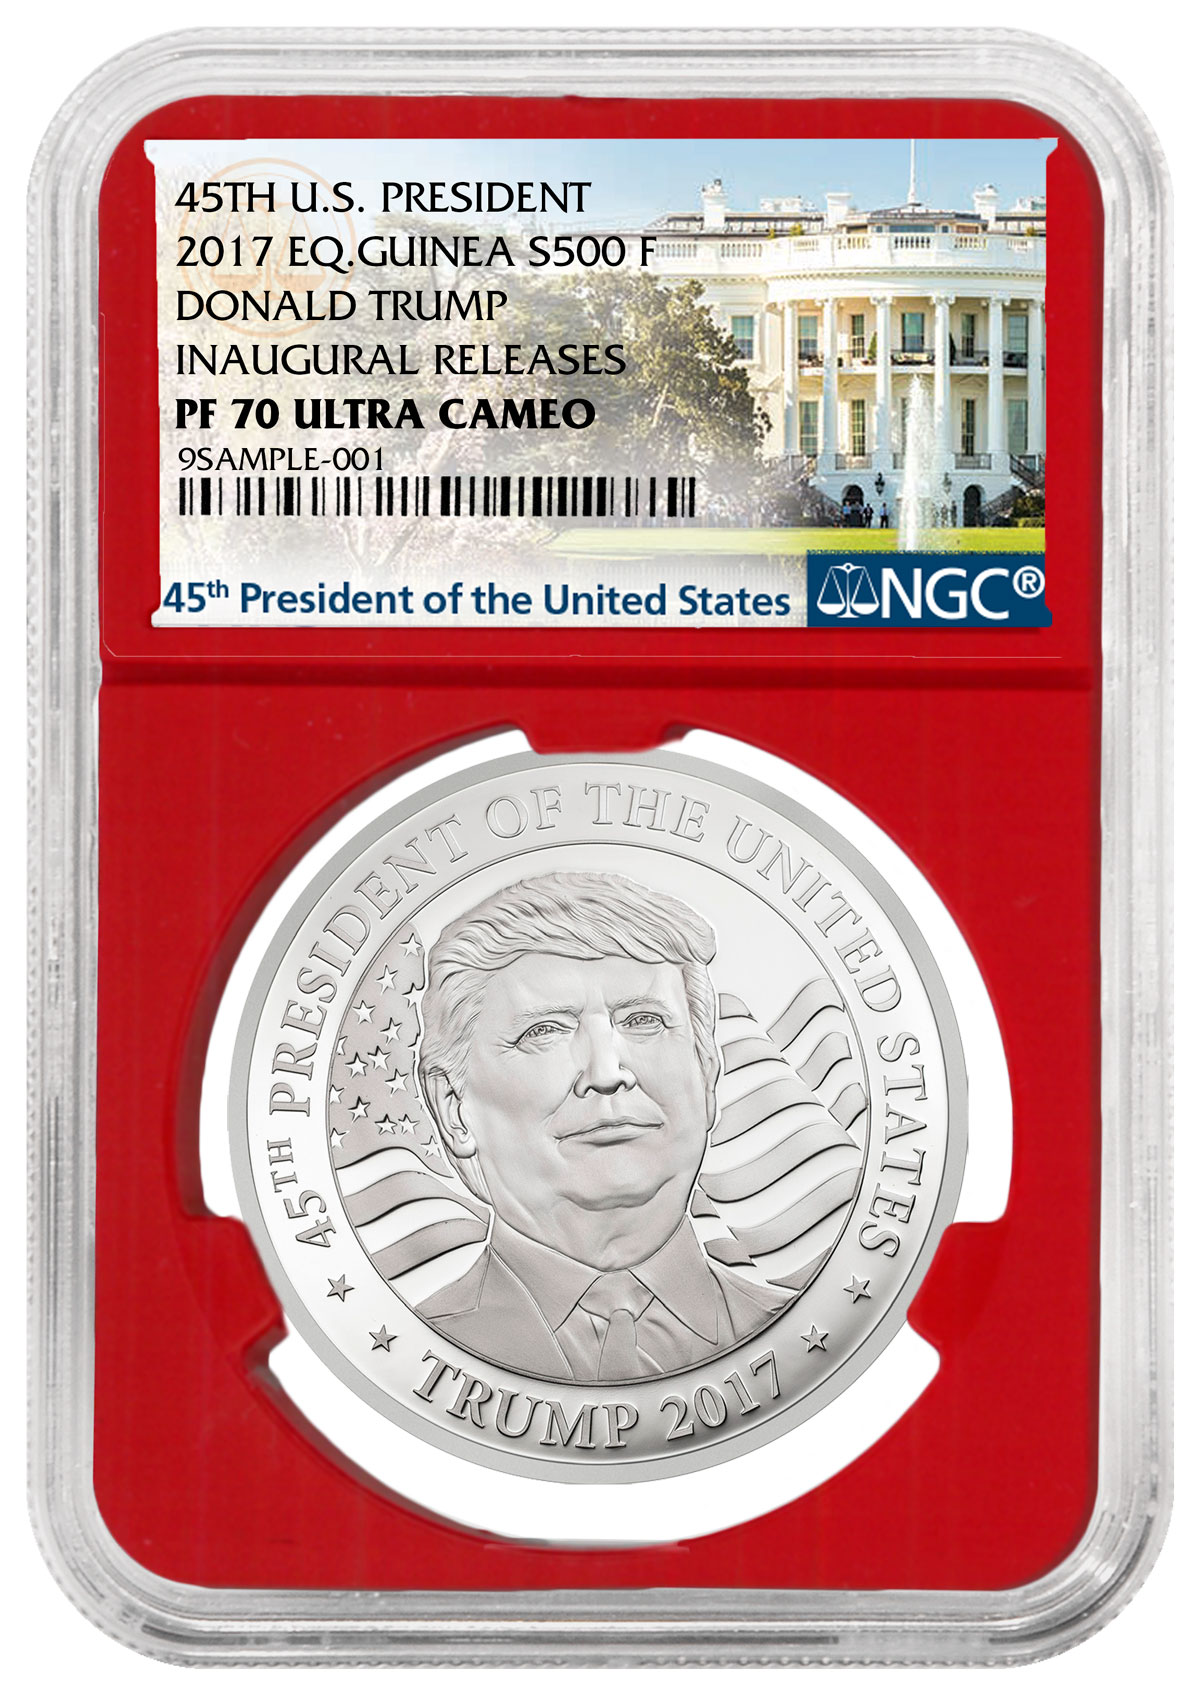 2017 Equatorial Guinea Donald Trump 10 g Silver Proof Fr. 500 Coin NGC PF70 UC (Red Core Holder -Exclusive White House Label)